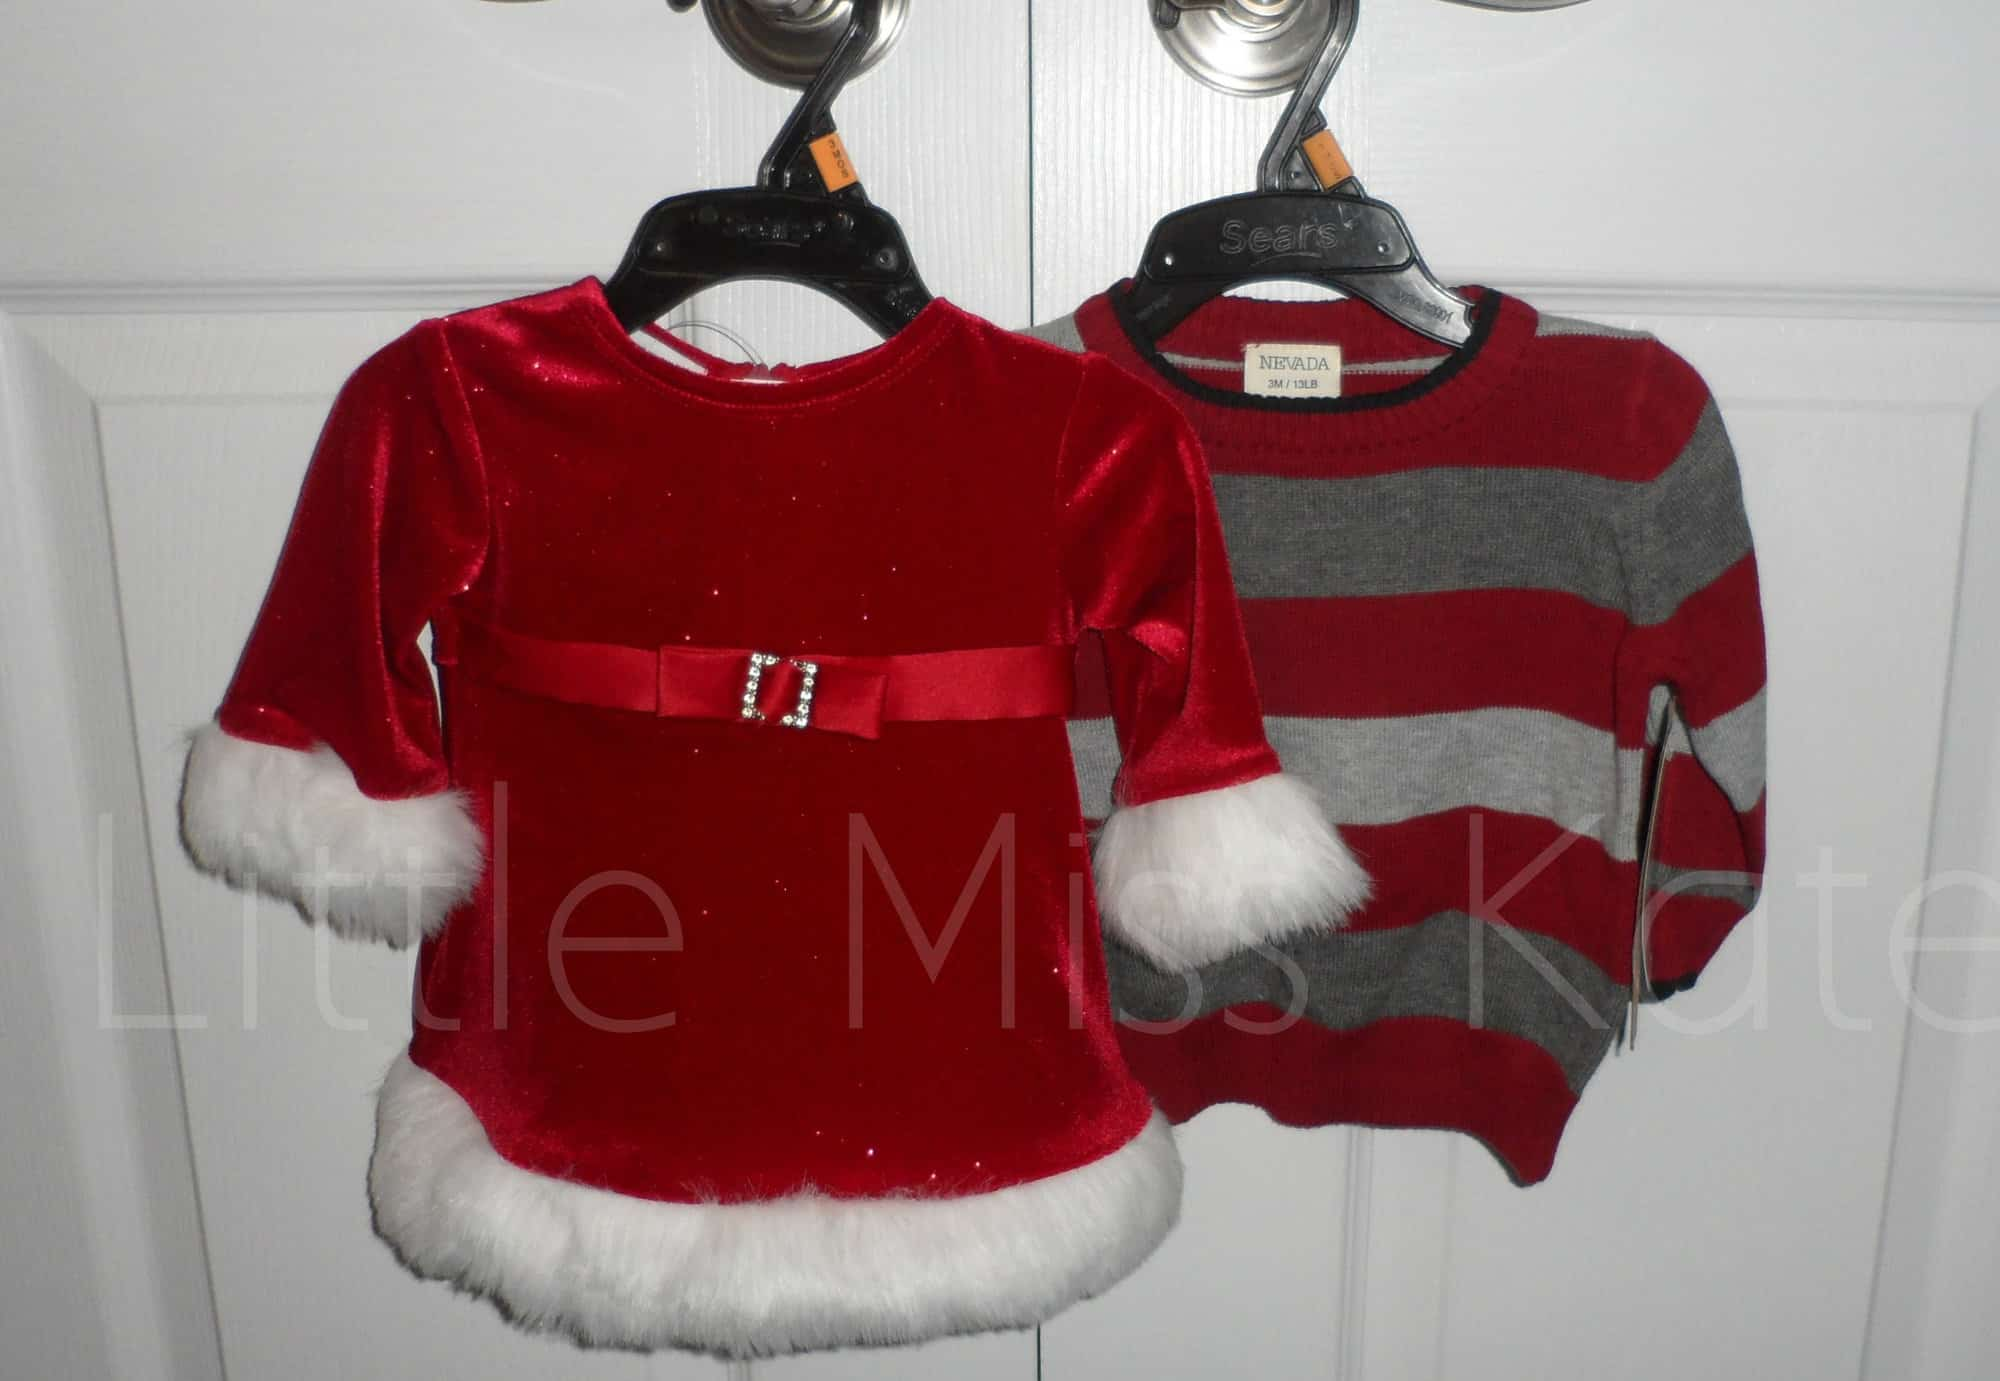 sears infant outfits